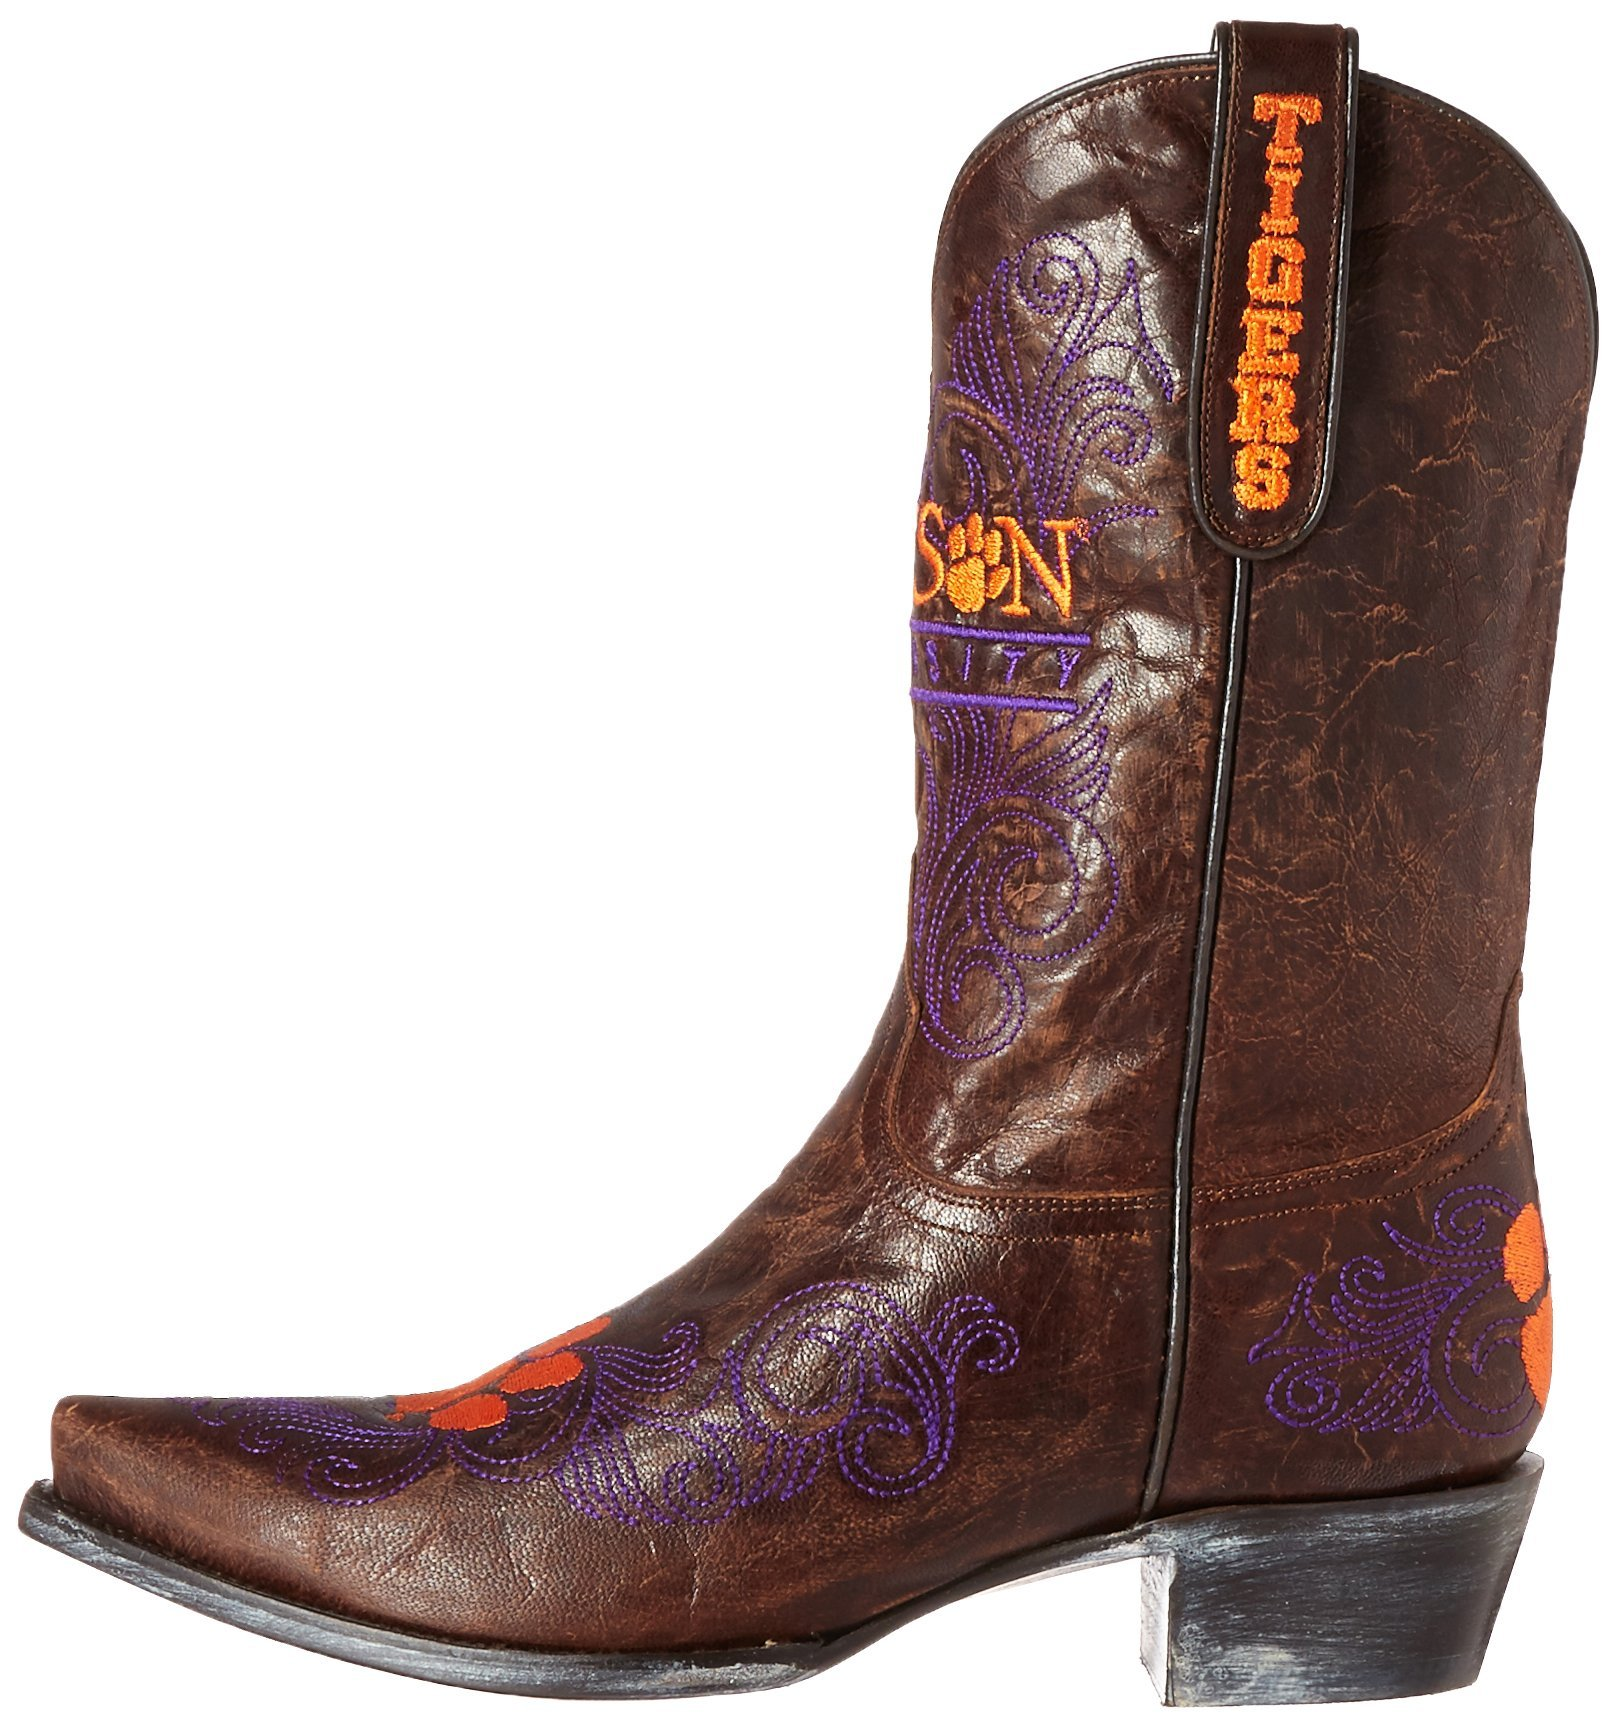 Gameday-Boots-NCAA-Clemson-Tigers-Women-039-s-10-Inch-Choose-SZ-color miniature 6